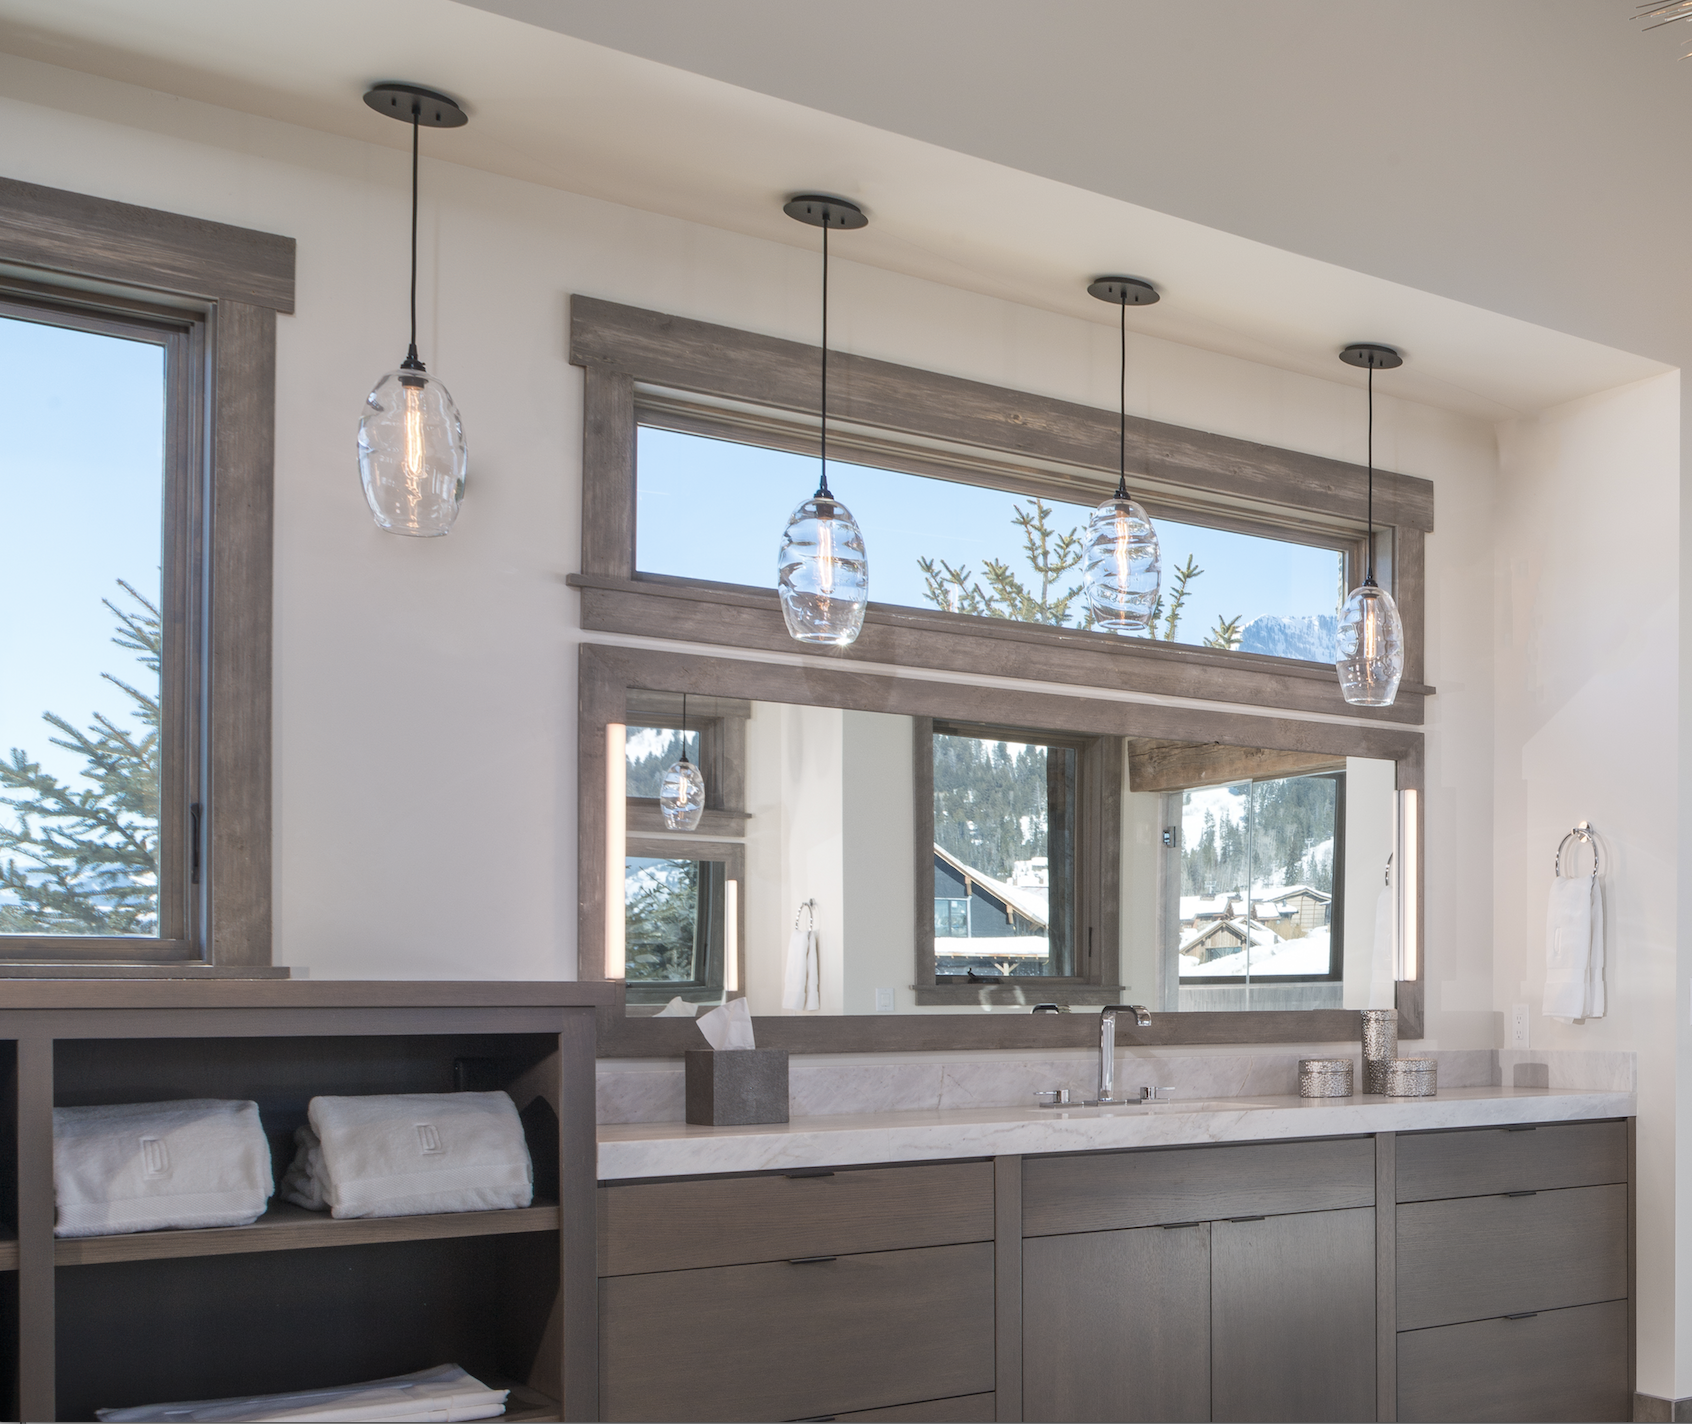 Ellisse optic blown glass pendants by Hammerton Studio in a master bath by KAM Designs l San Ramon CA